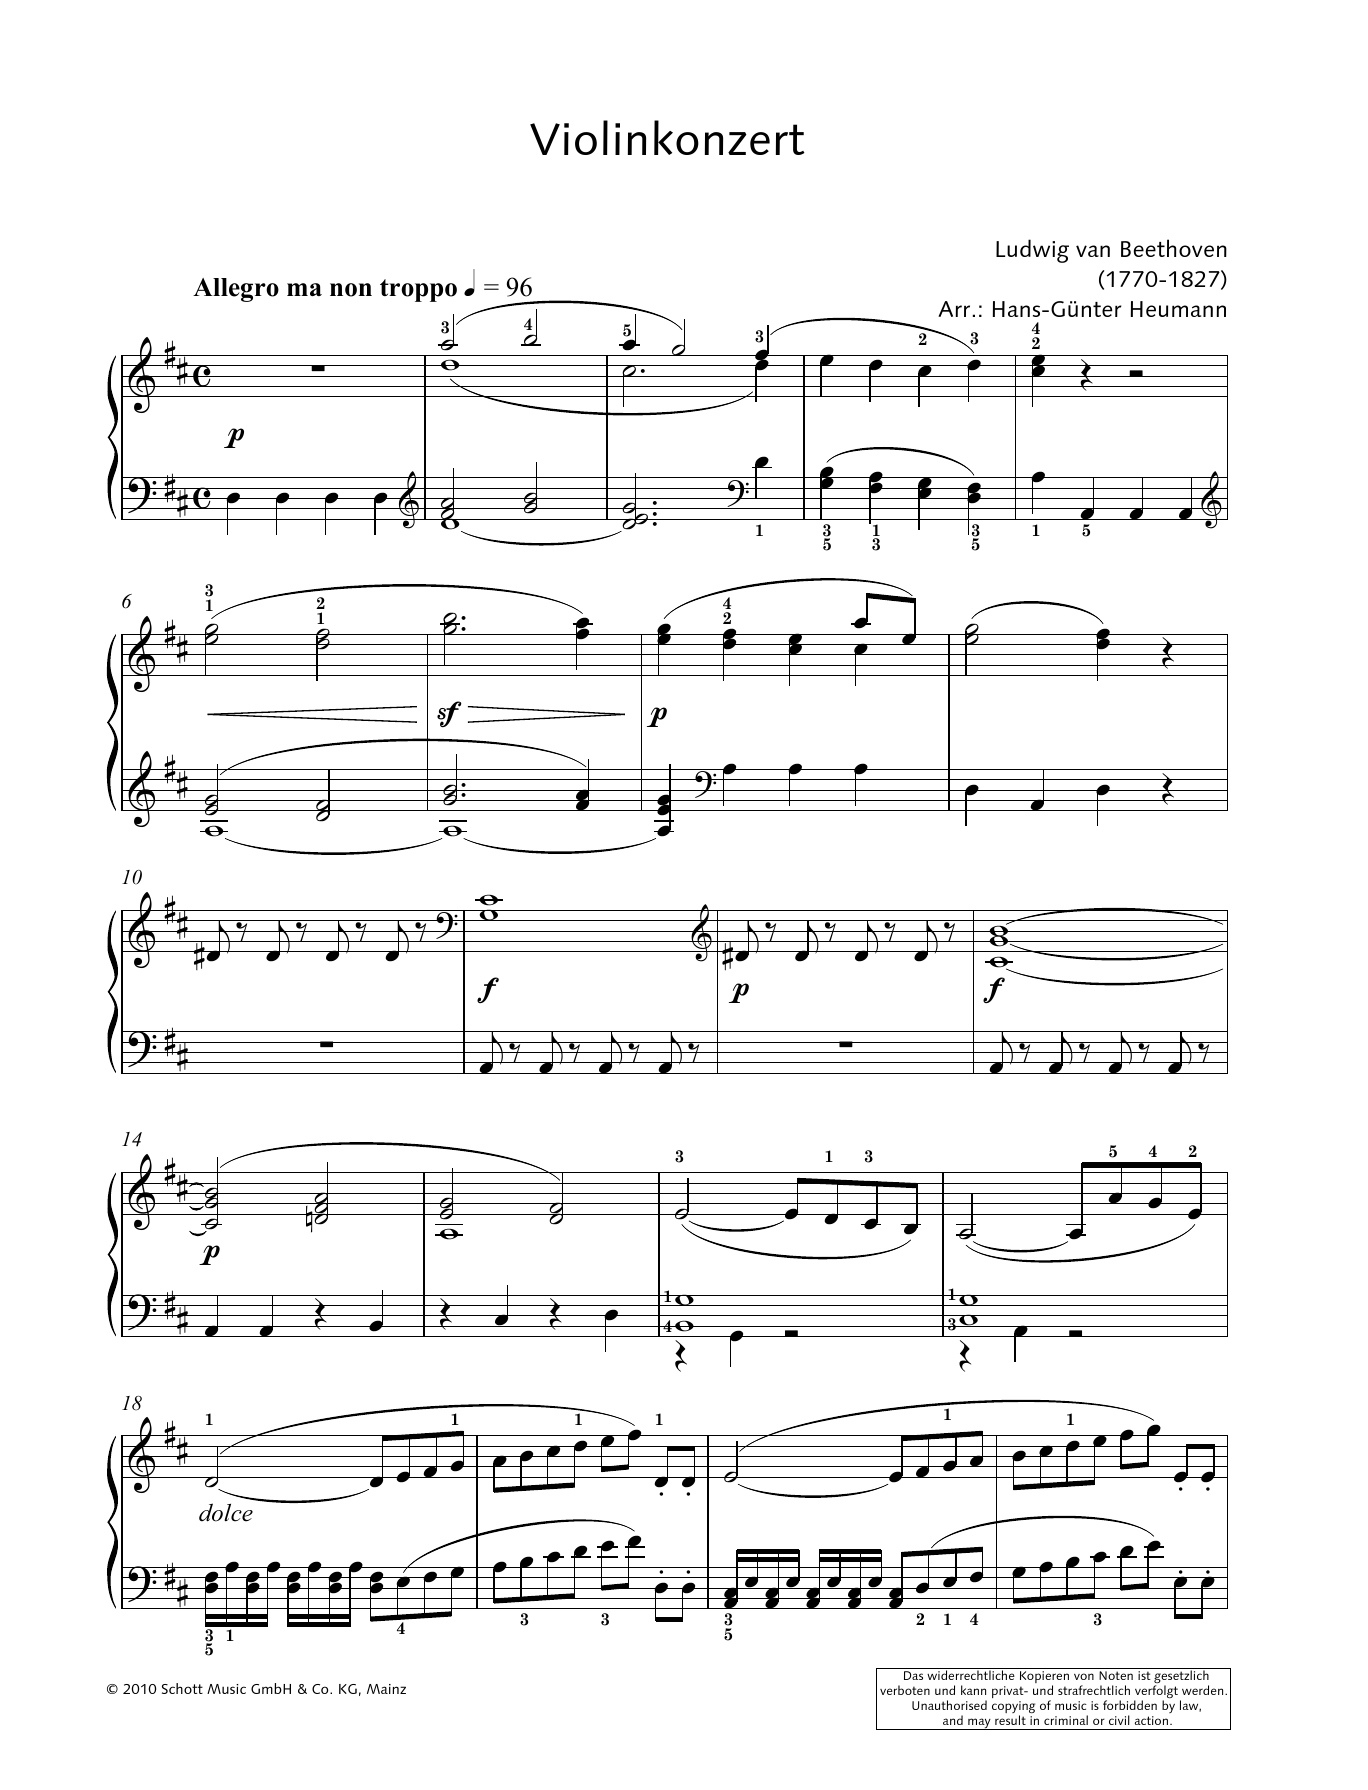 Concerto for Violin and Orchestra in D major Sheet Music